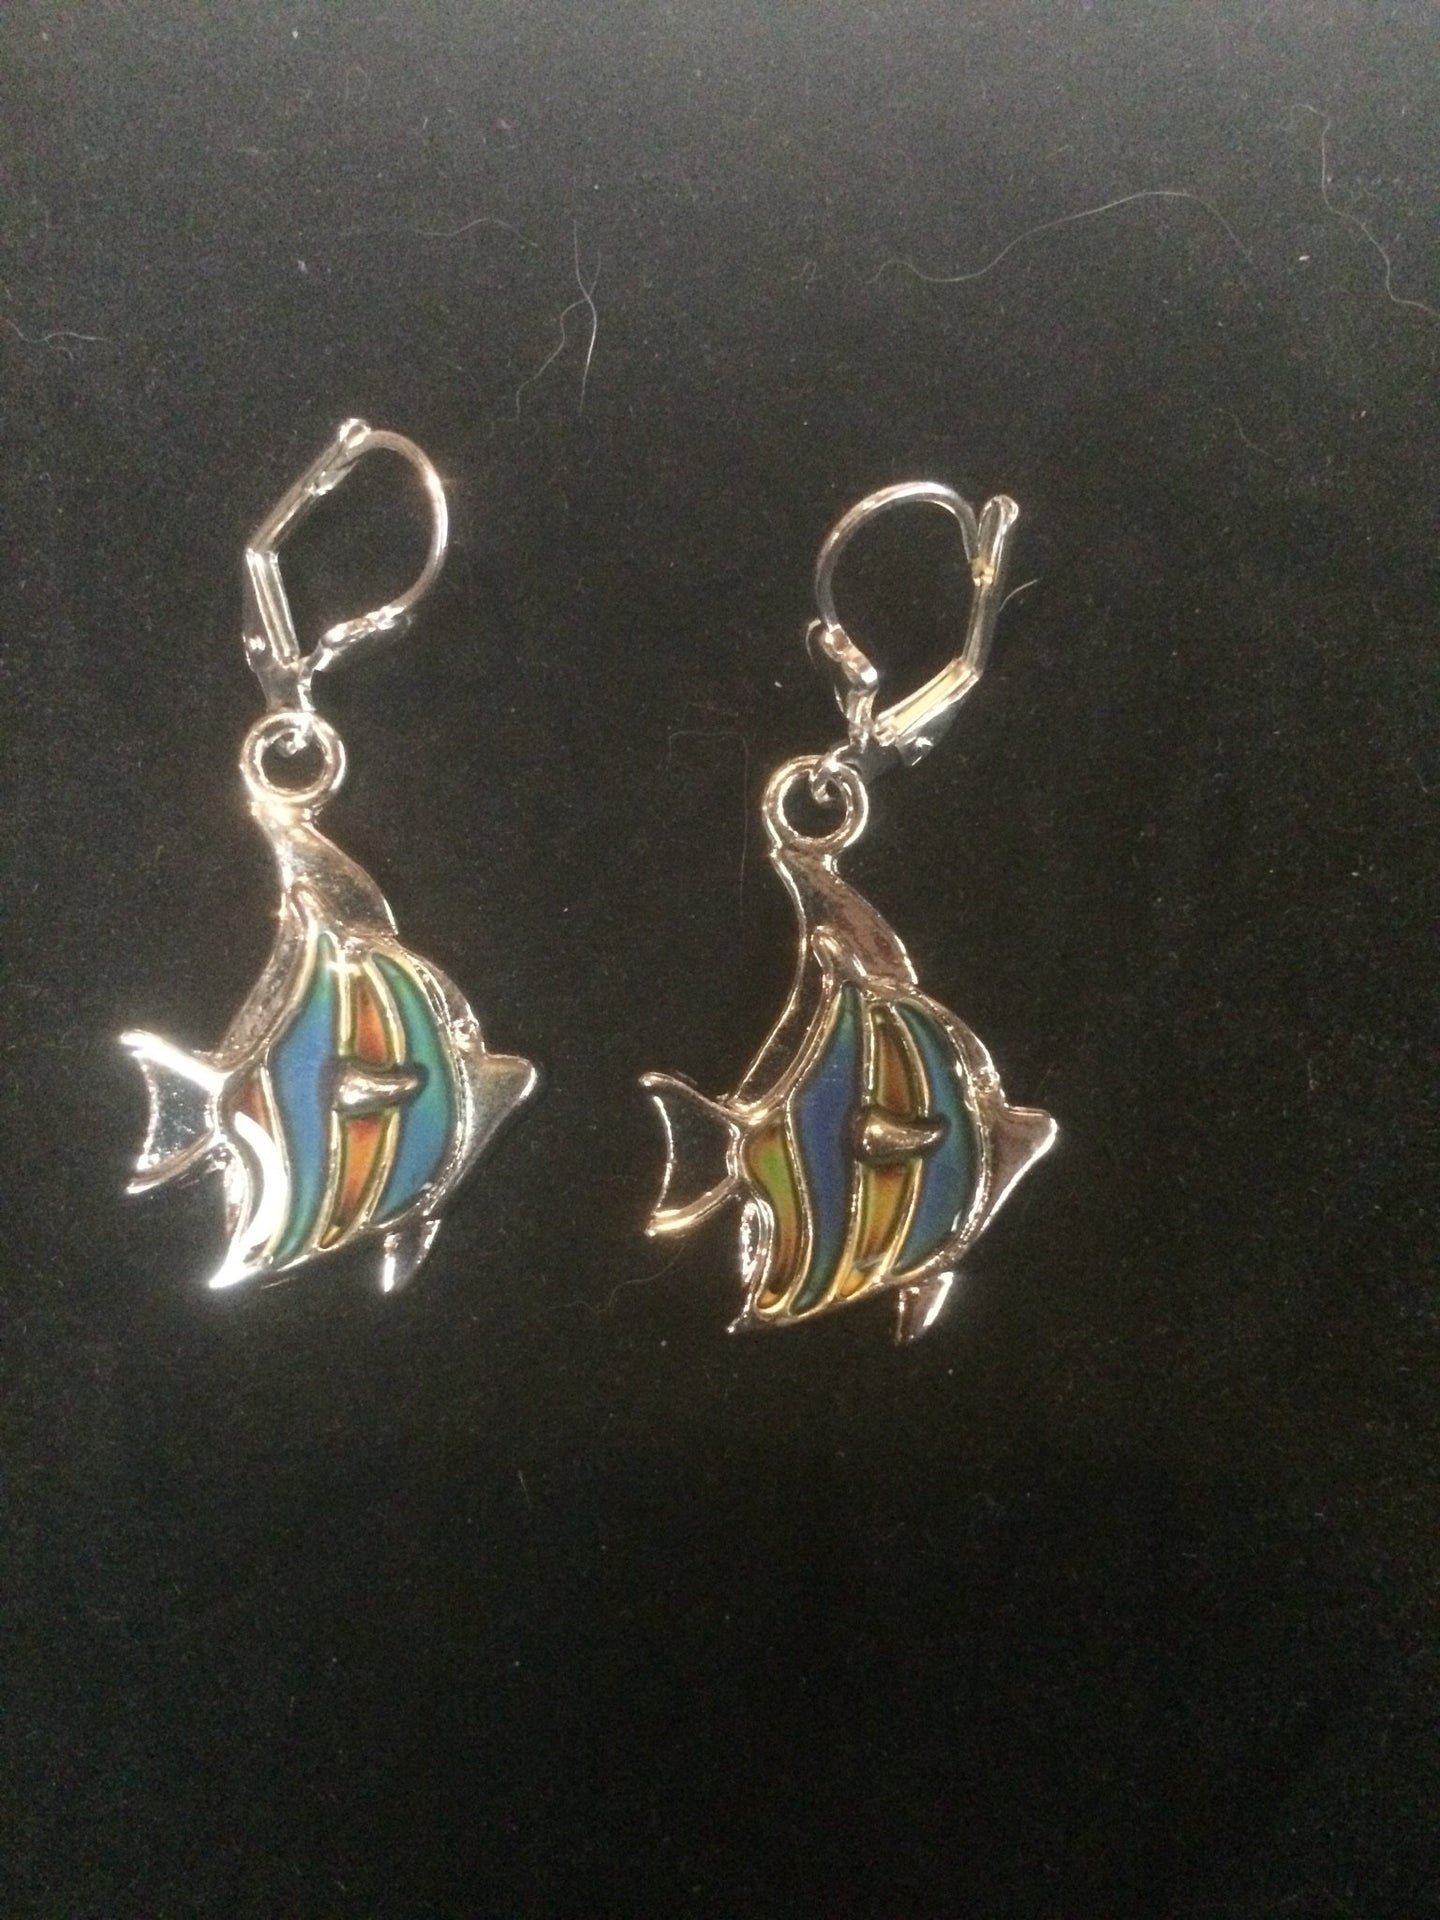 A pair of silver plated fish beads that change color with temperature sits below silver plated brass leverbacks.